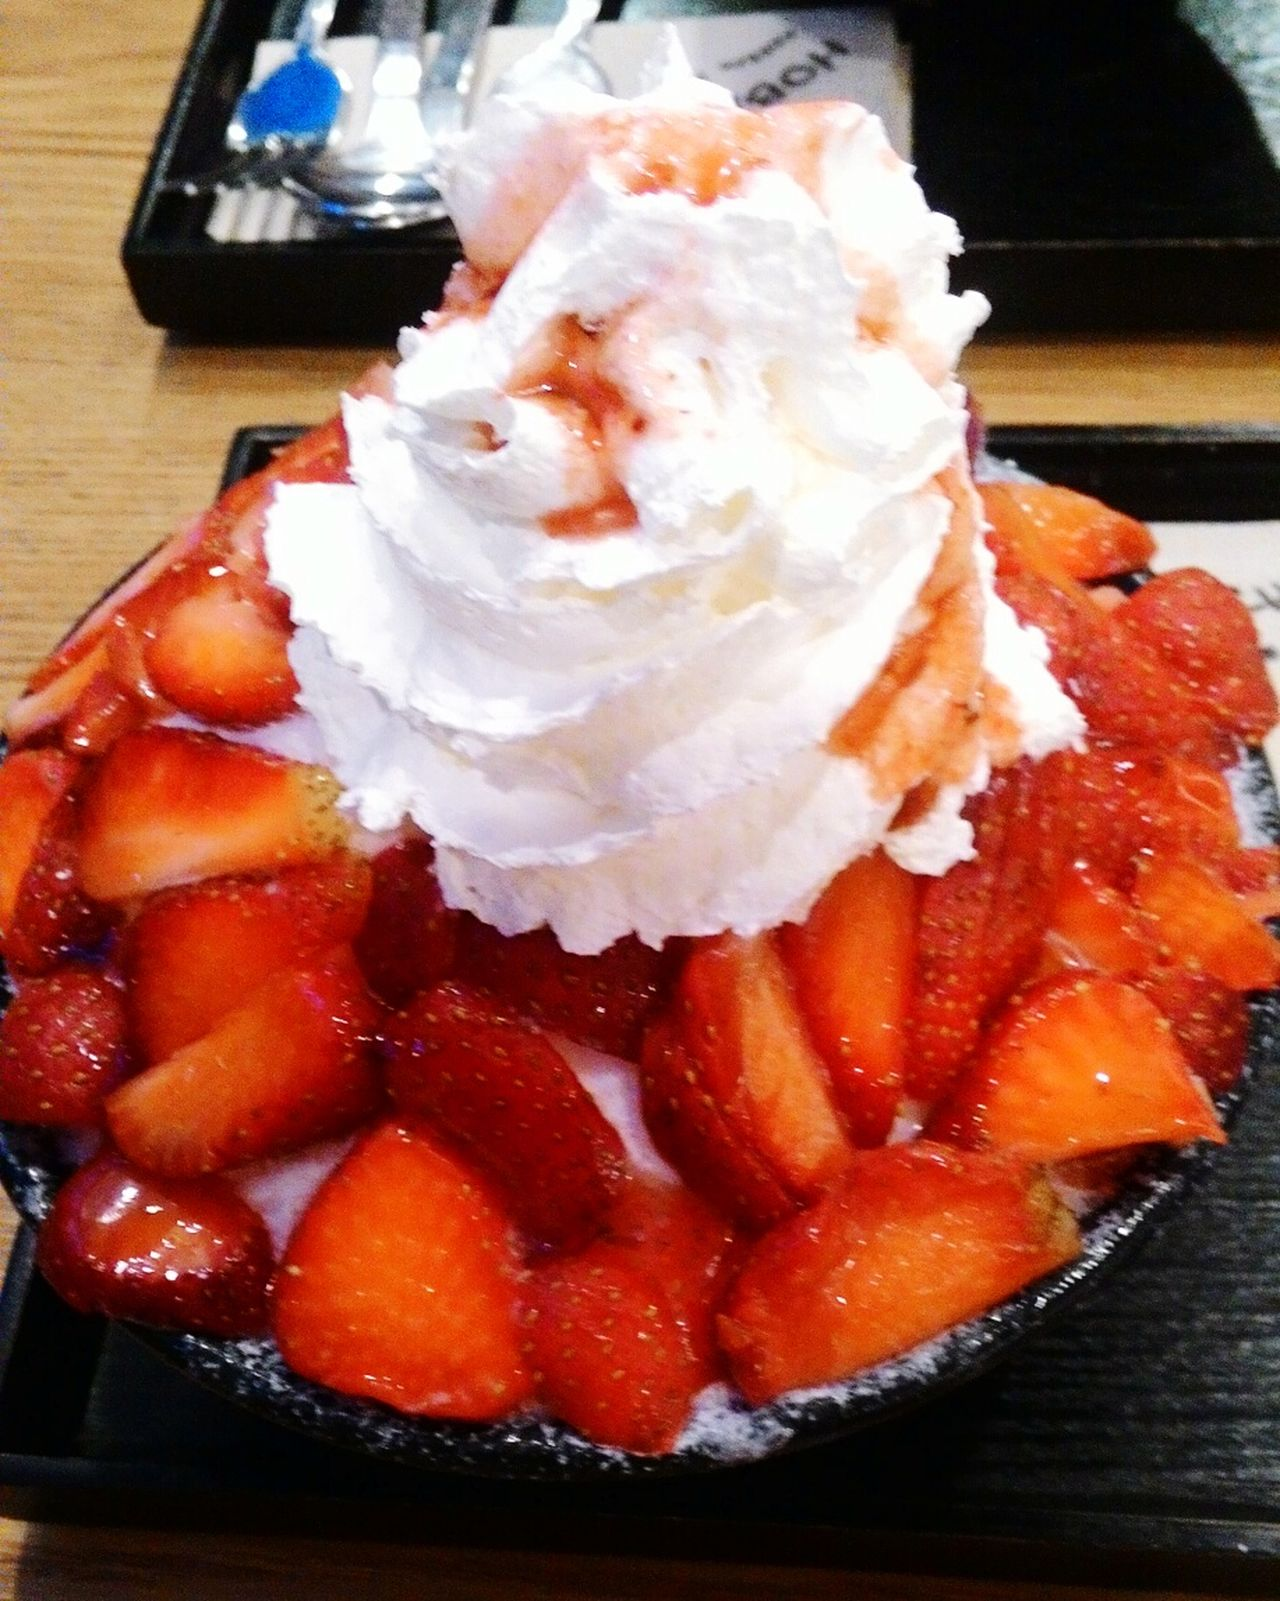 Check This Out Sweetcravings Hobings Relaxing Strawberryicecream Koreanicecream Afterofficehour Enjoying Life Fromthephilippines HappyLikeaChild